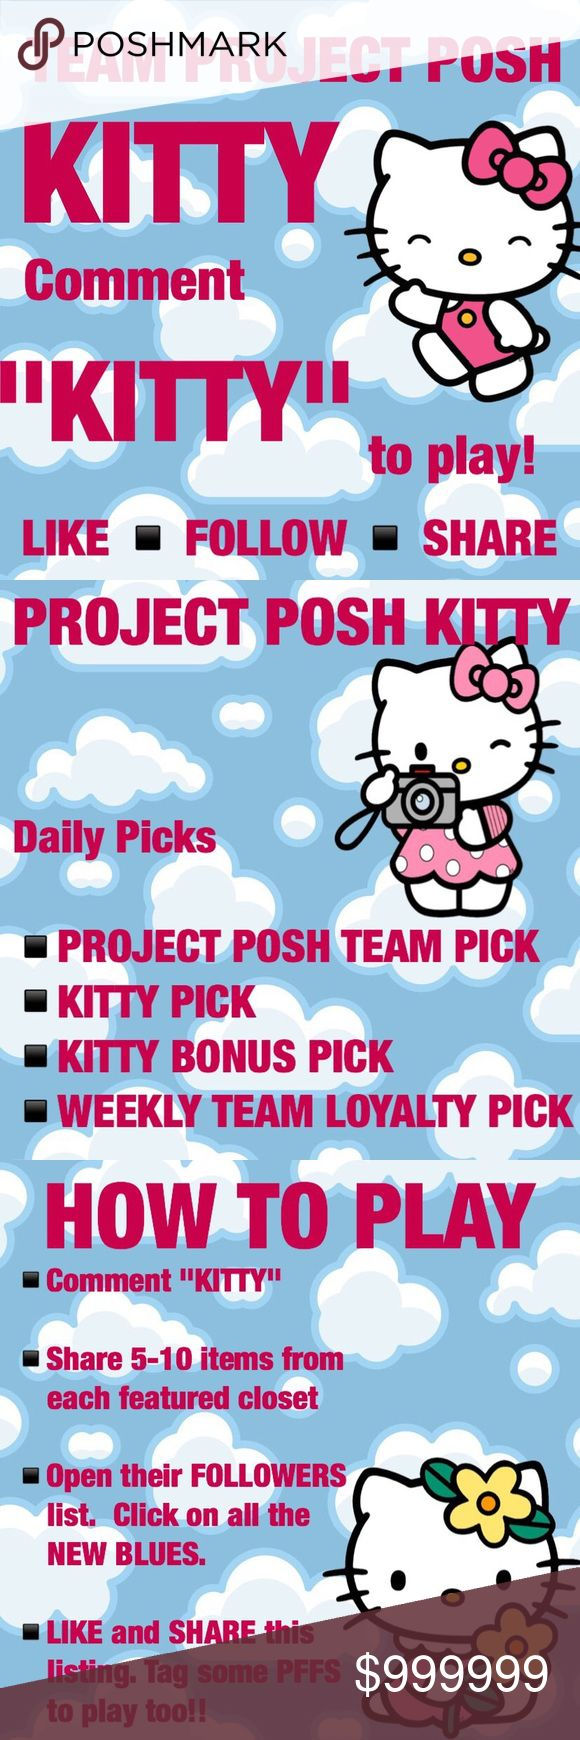 🐱 🌷THE PROJECT POSH TEAM KITTY 🌷🐱 🌹THE PROJECT POSH TEAM KITTY 🌹GAME